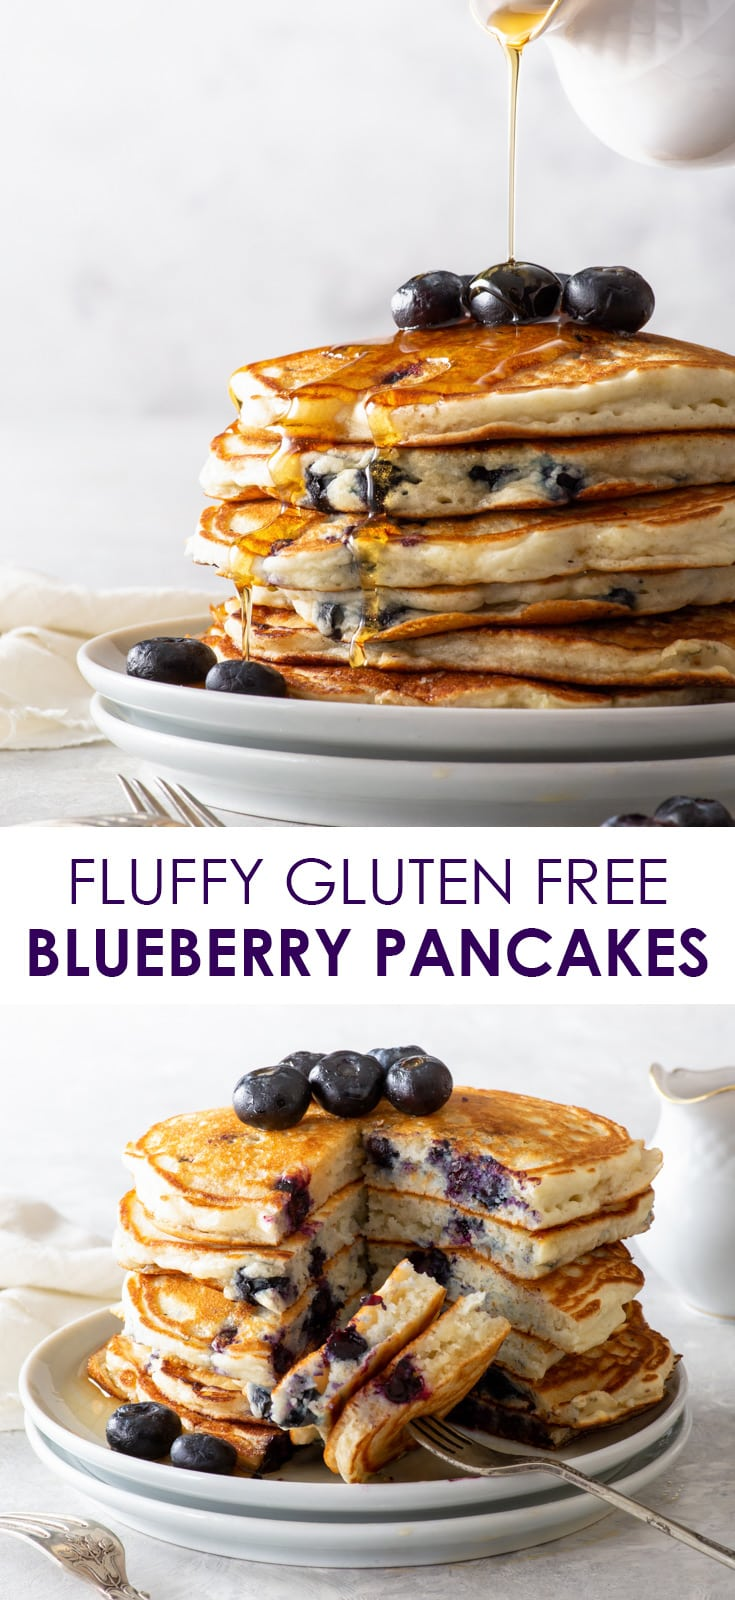 Pinterest image for gluten free blueberry pancakes, in the form of a collage.